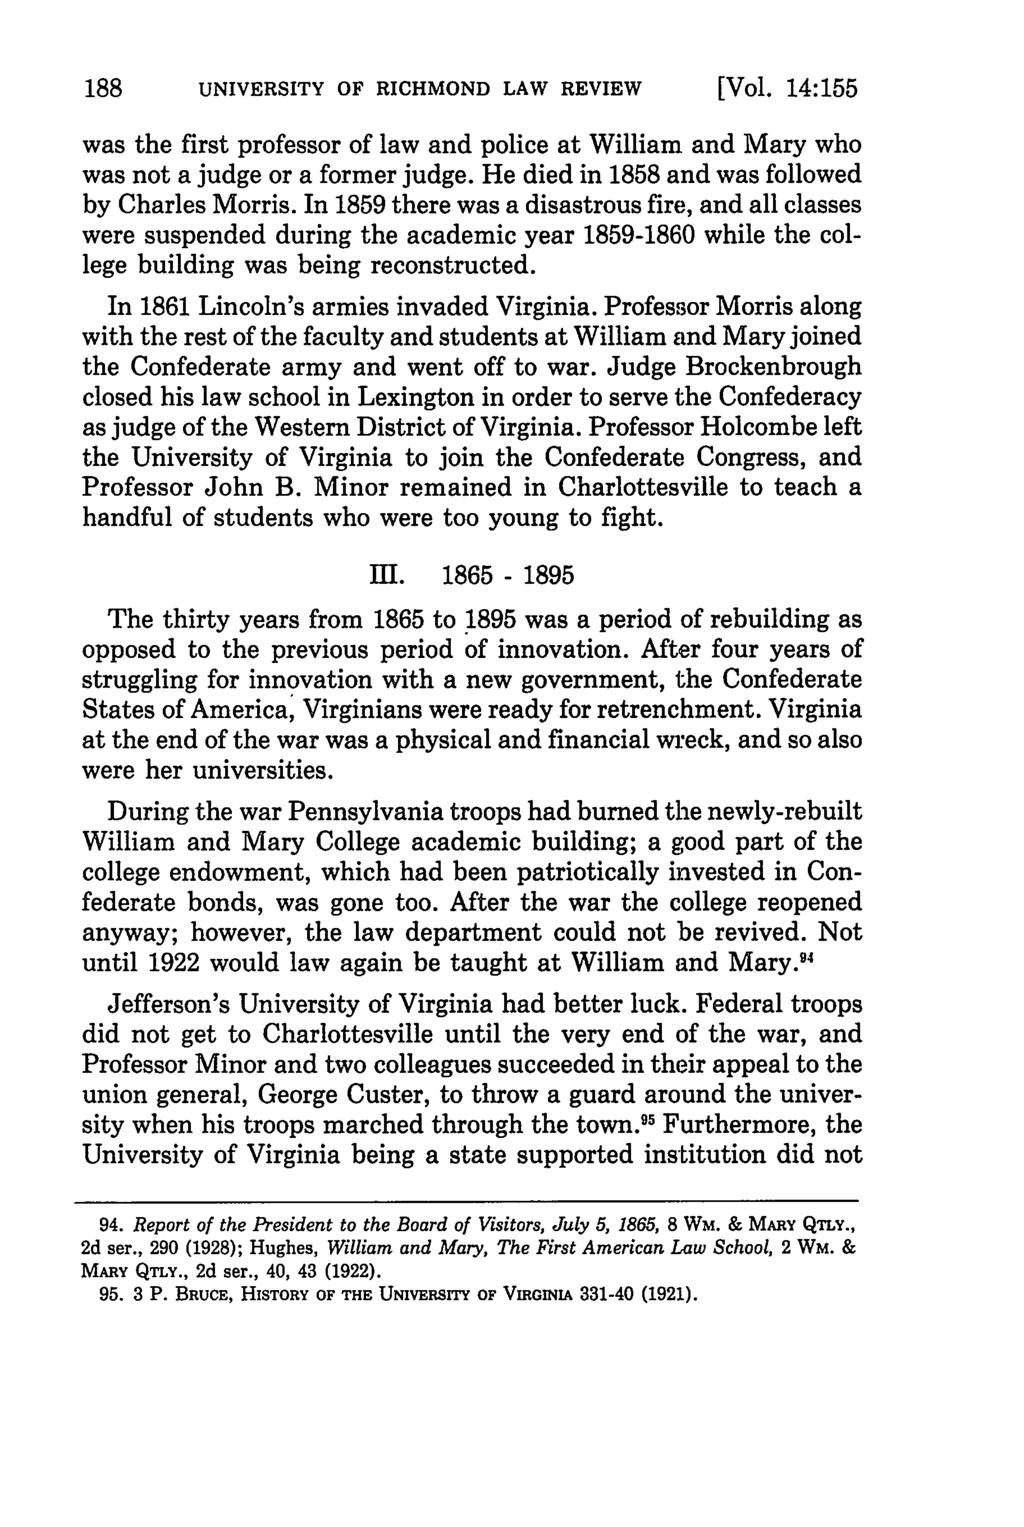 UNIVERSITY OF RICHMOND LAW REVIEW [Vol. 14:155 was the first professor of law and police at William and Mary who was not a judge or a former judge. He died in 1858 and was followed by Charles Morris.